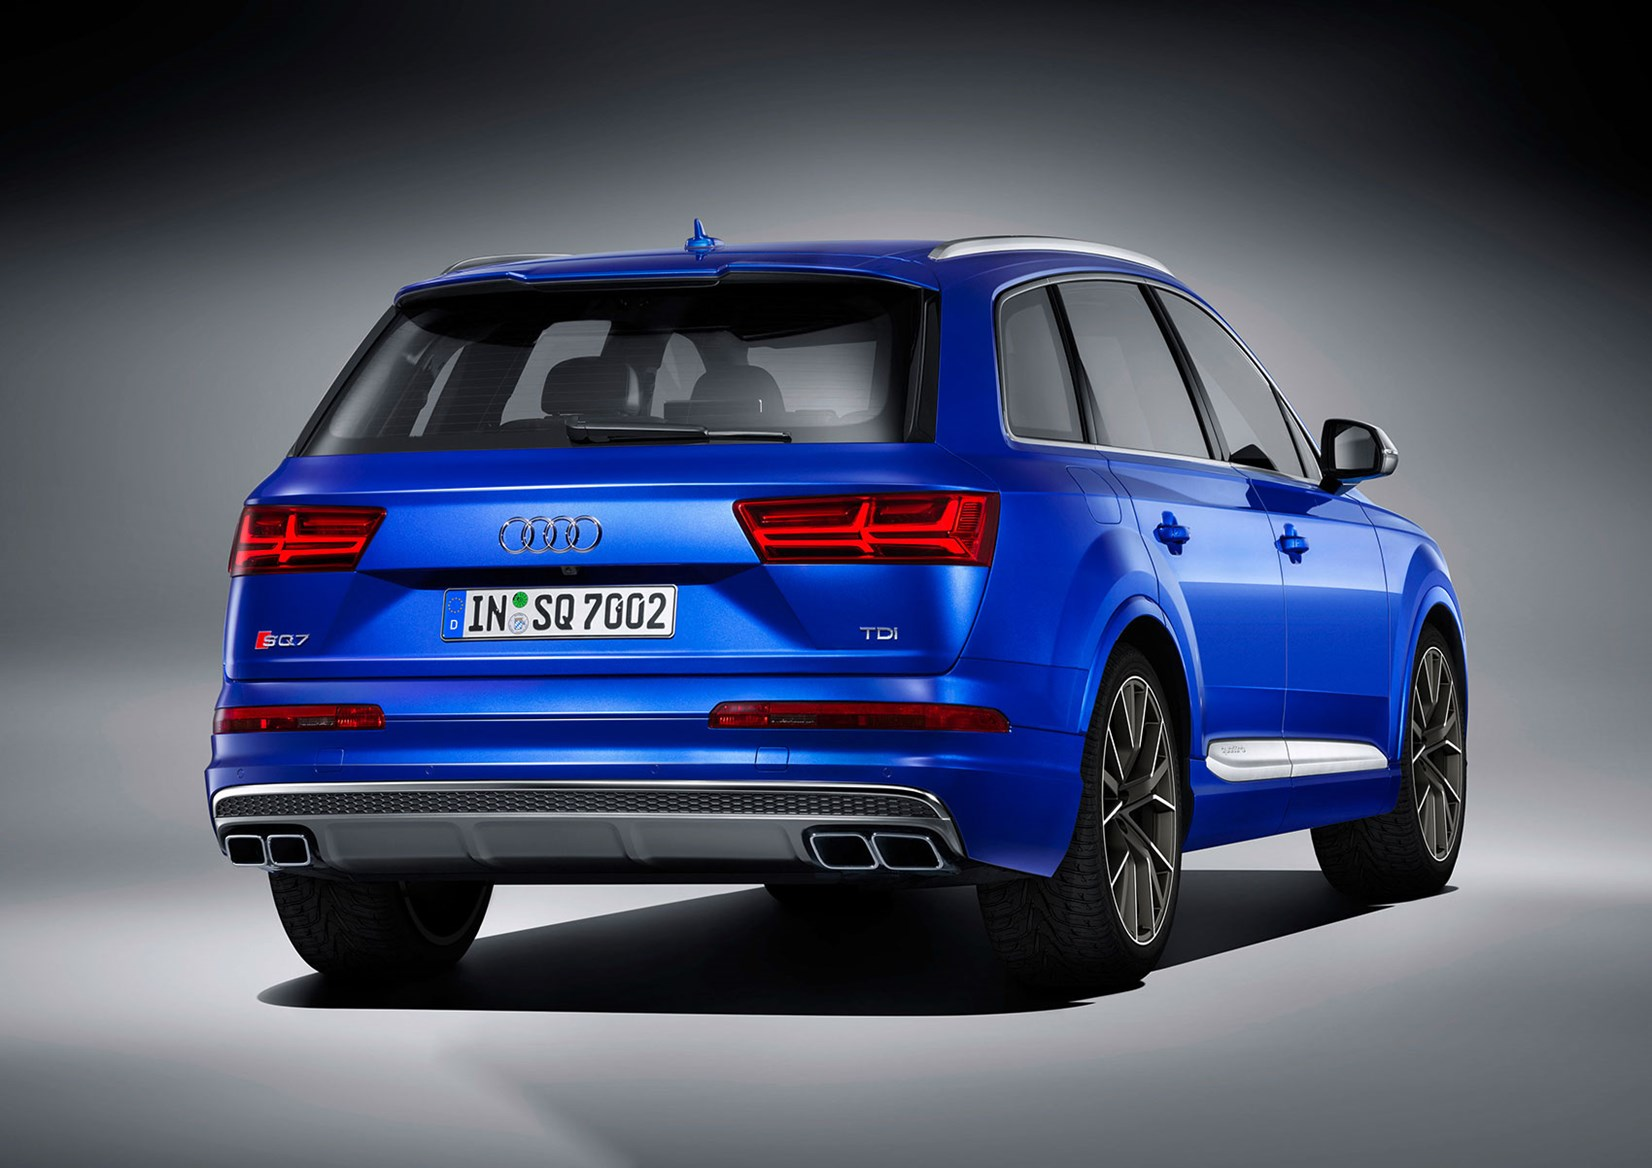 Set fans to electric: new Audi SQ7 TDI packs electric supercharging tech by CAR Magazine